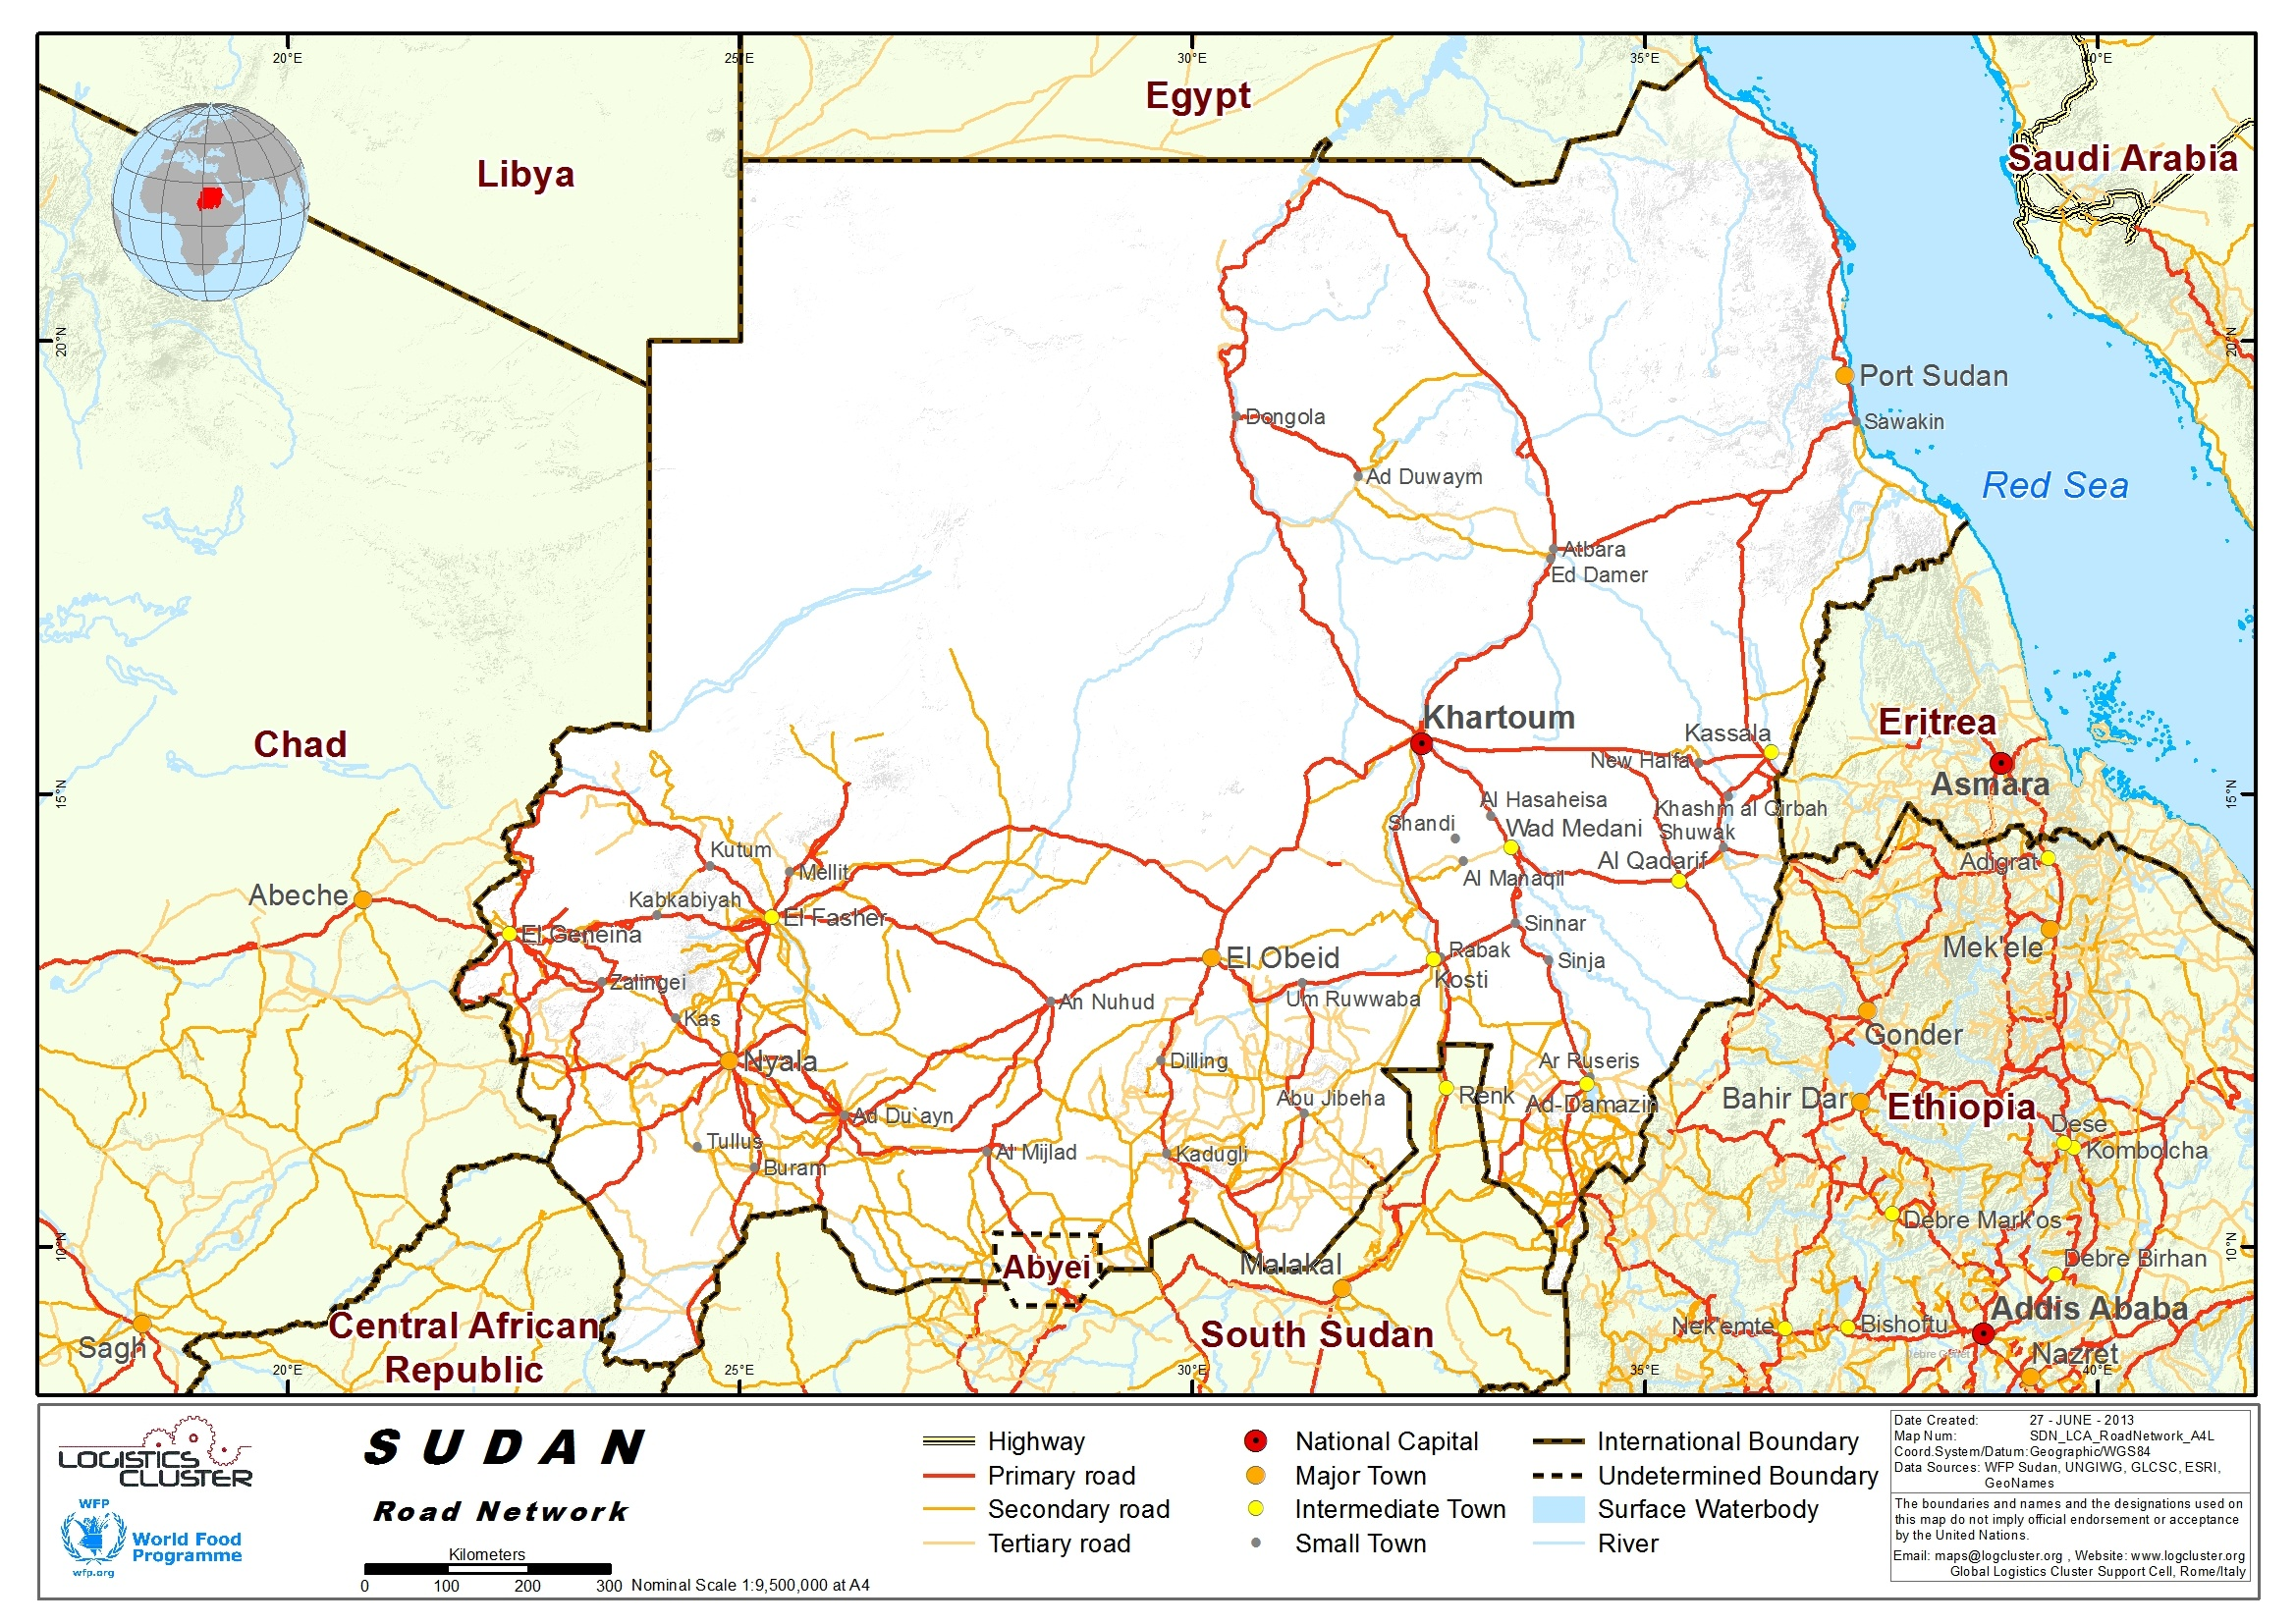 an overview of sudan Sudan - educational system overview early foundations of sudanese education: the educational system of modern sudan is rooted in the islamic culture of the northern riverain arabs.